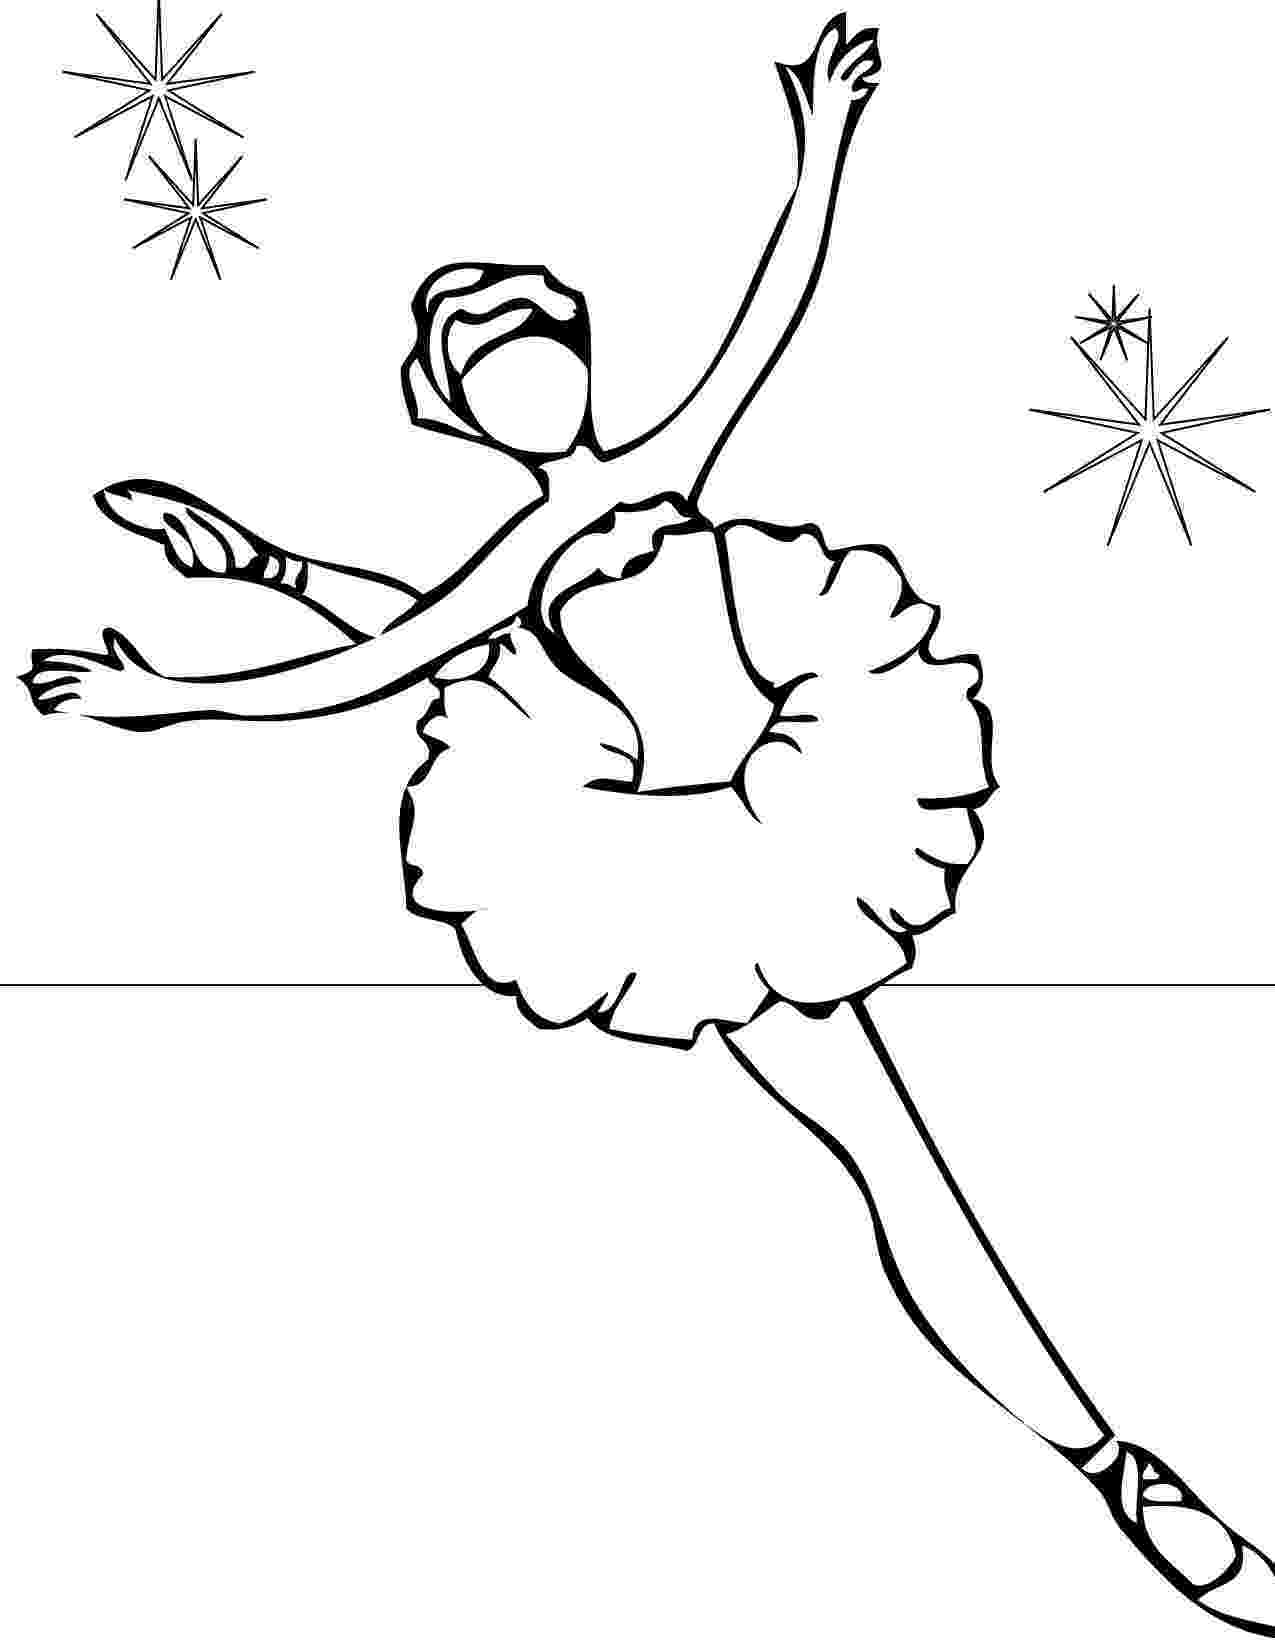 ballerina colouring pictures free printable ballet coloring pages for kids ballerina colouring pictures